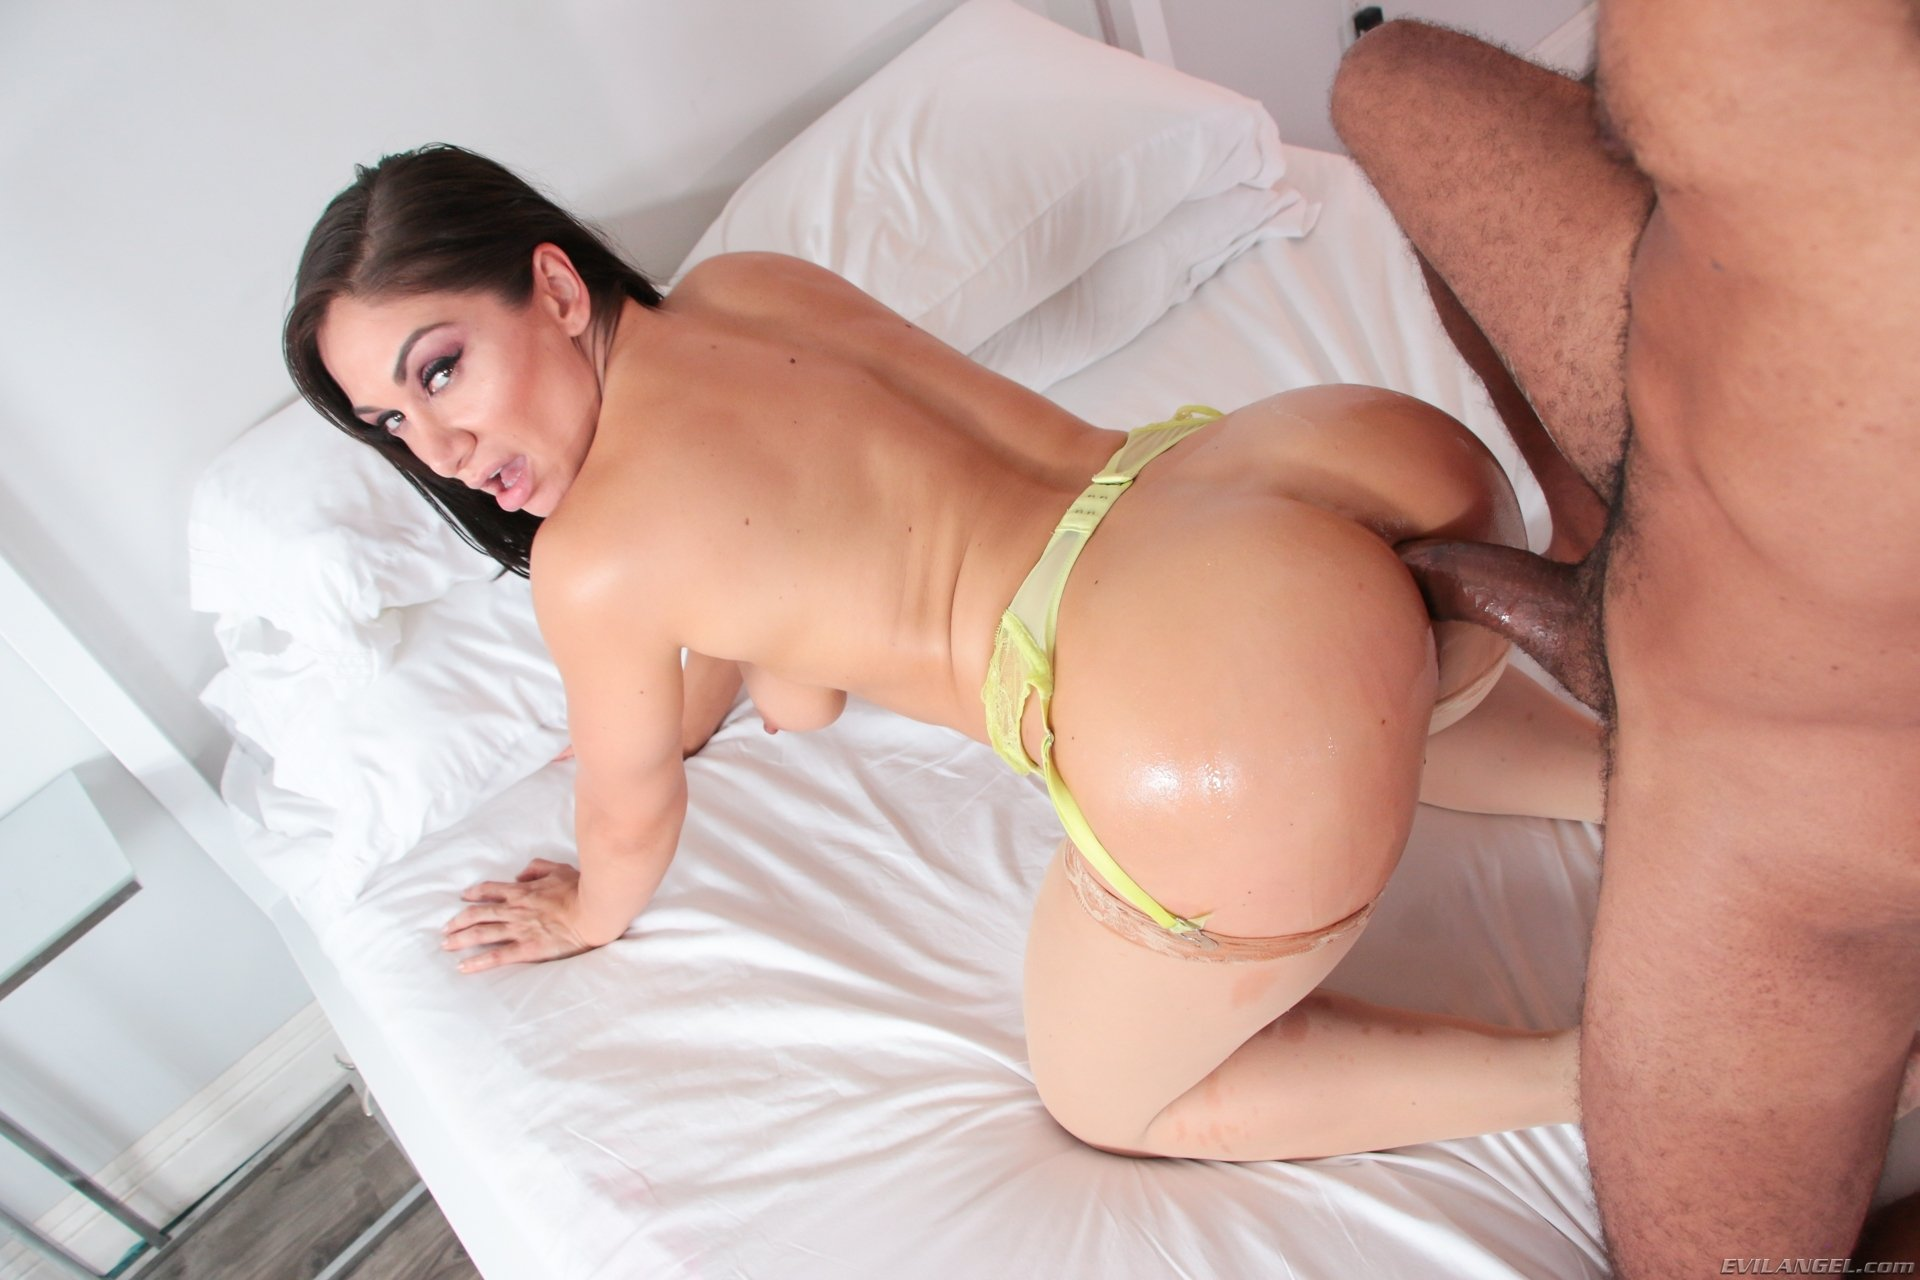 Big tits full movies hd Japanese wife fuck neighbour tube